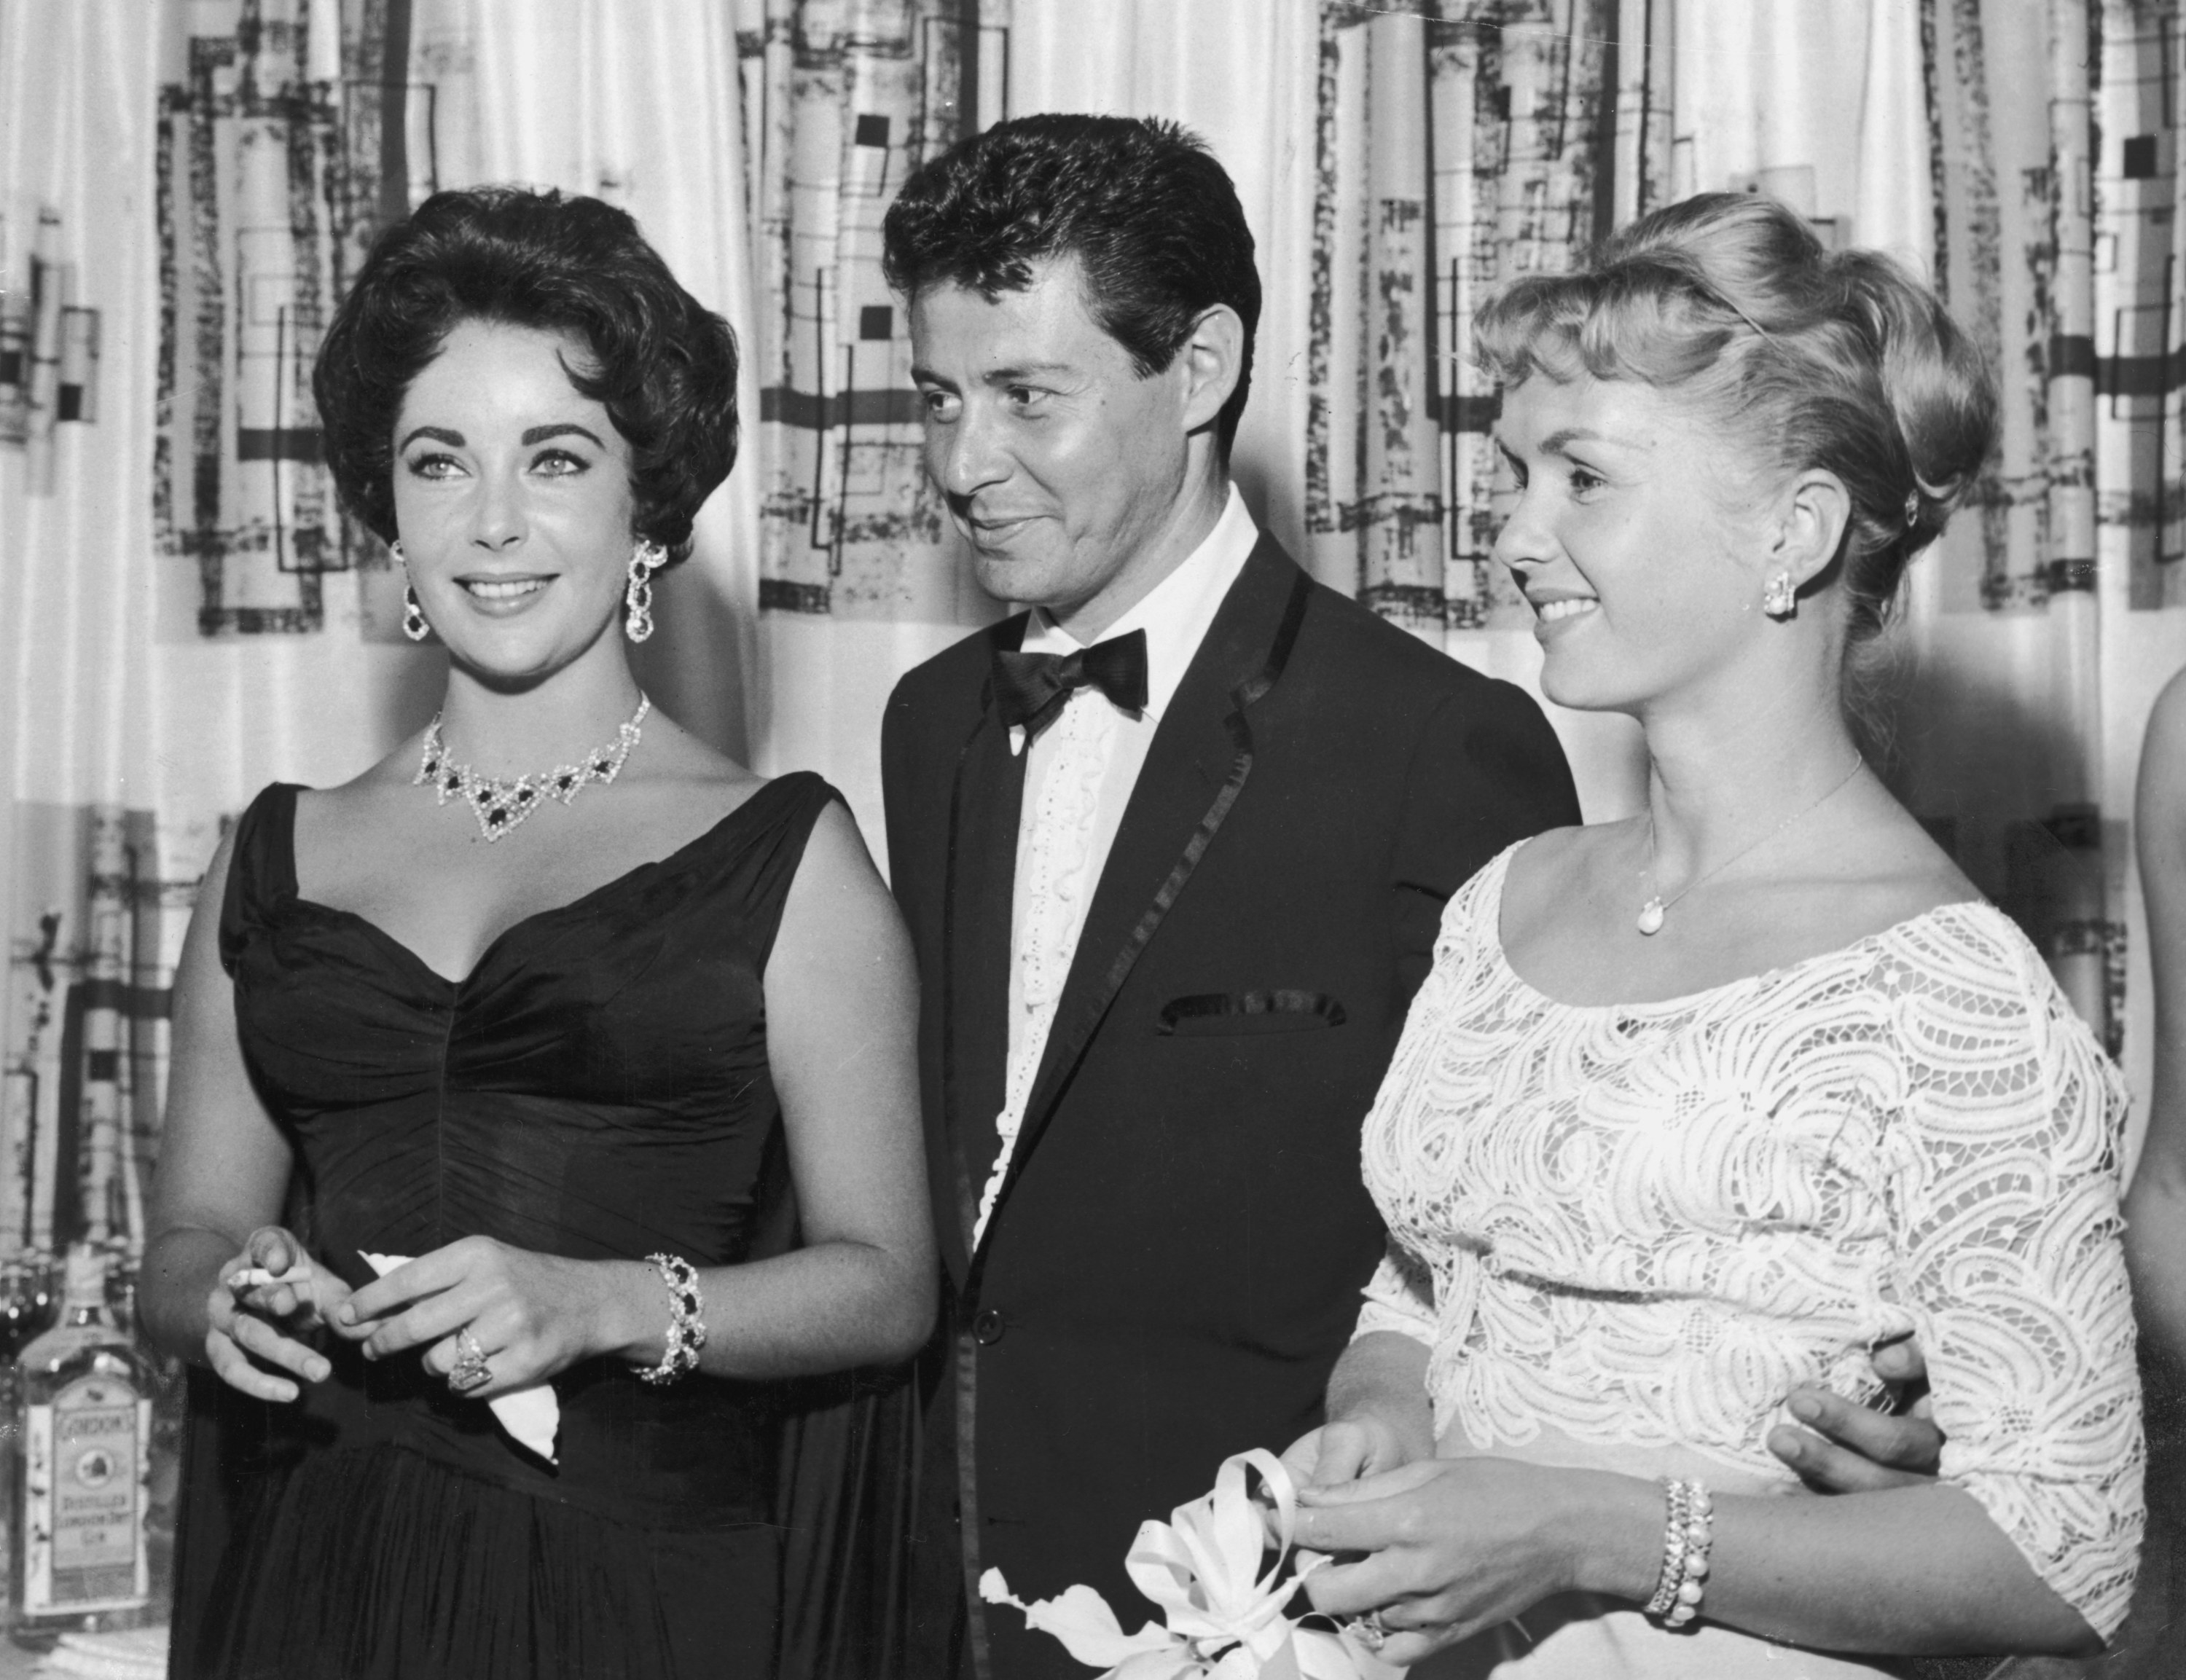 A photo of Elizabeth Taylor, Eddie Fisher, and Debbie Reynolds at a party in 1958